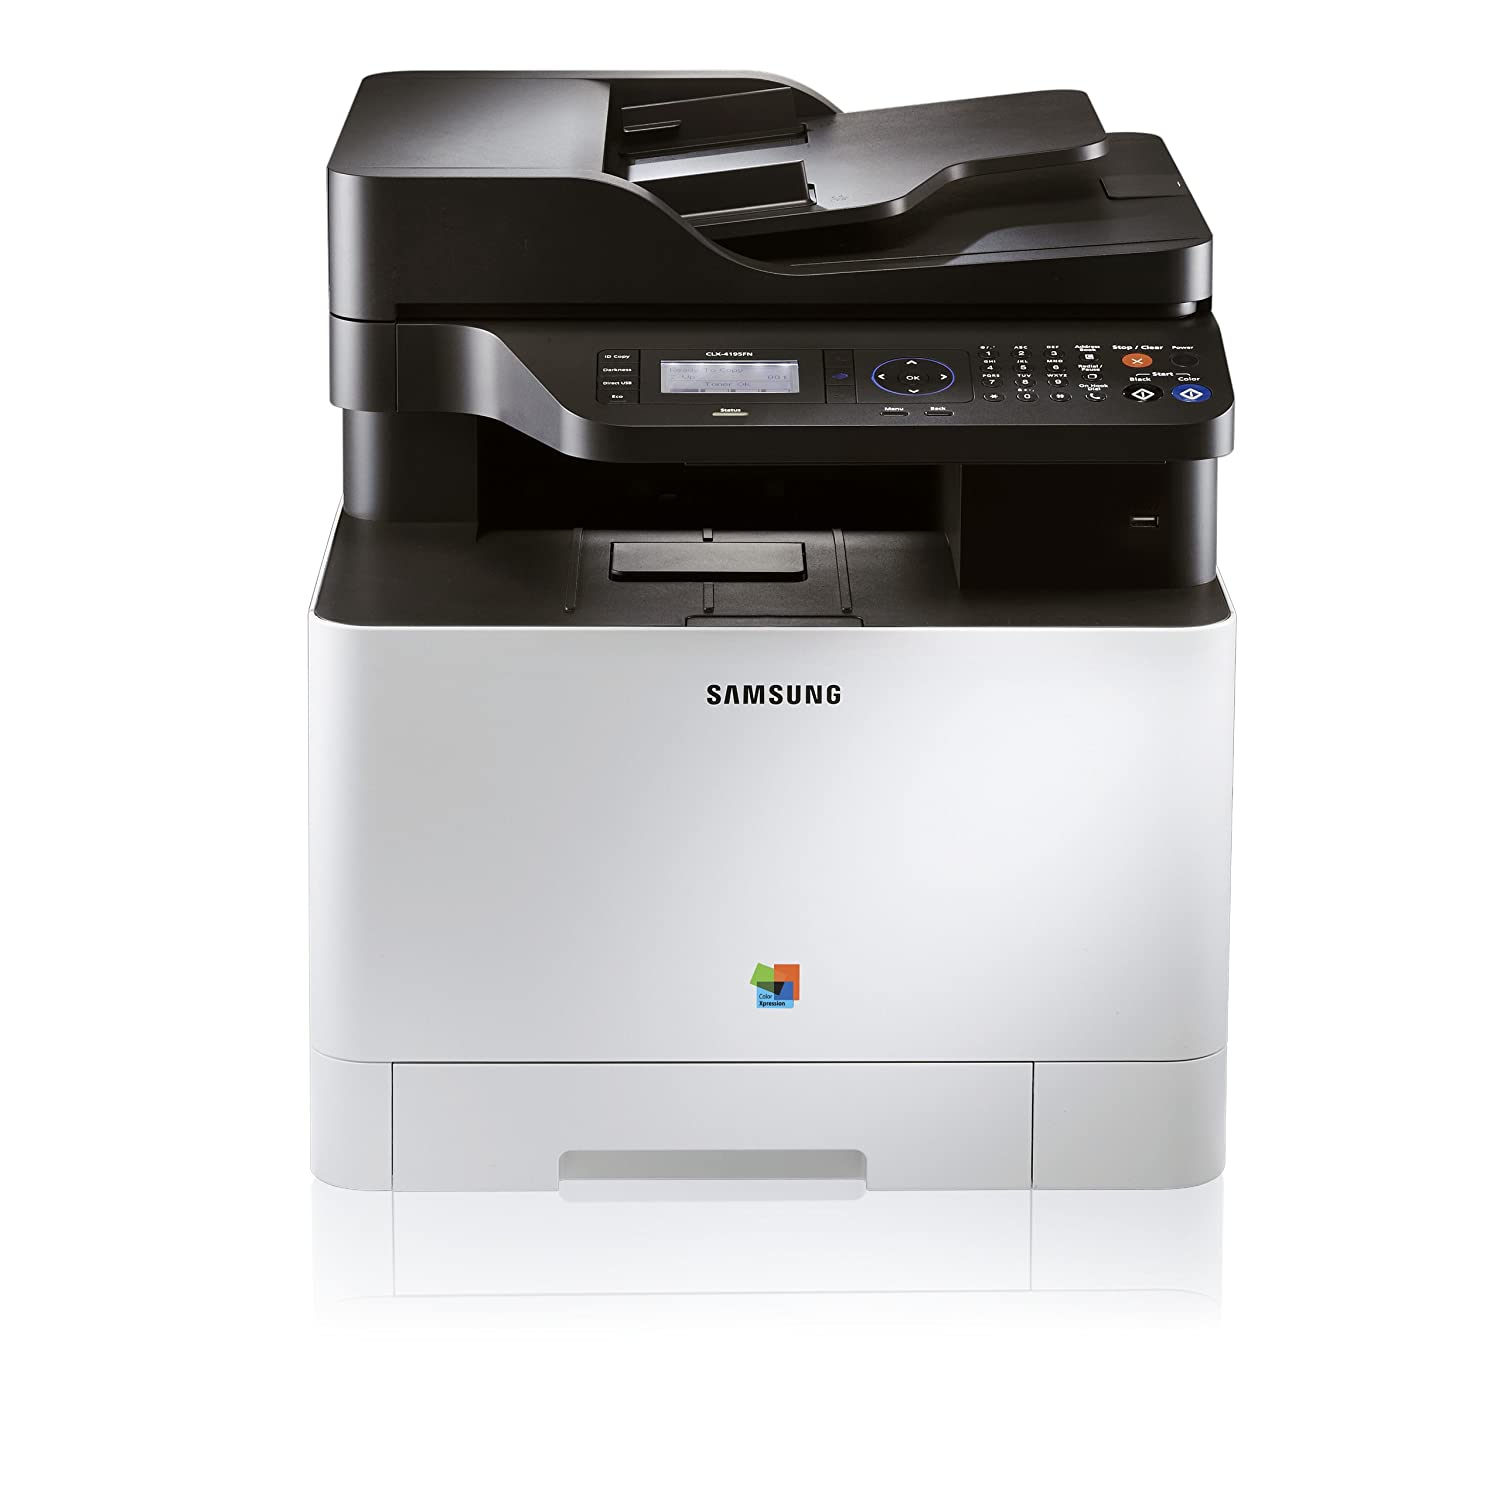 SAMSUNG CLX-4195FW MFP UNIVERSAL PRINT WINDOWS 10 DOWNLOAD DRIVER